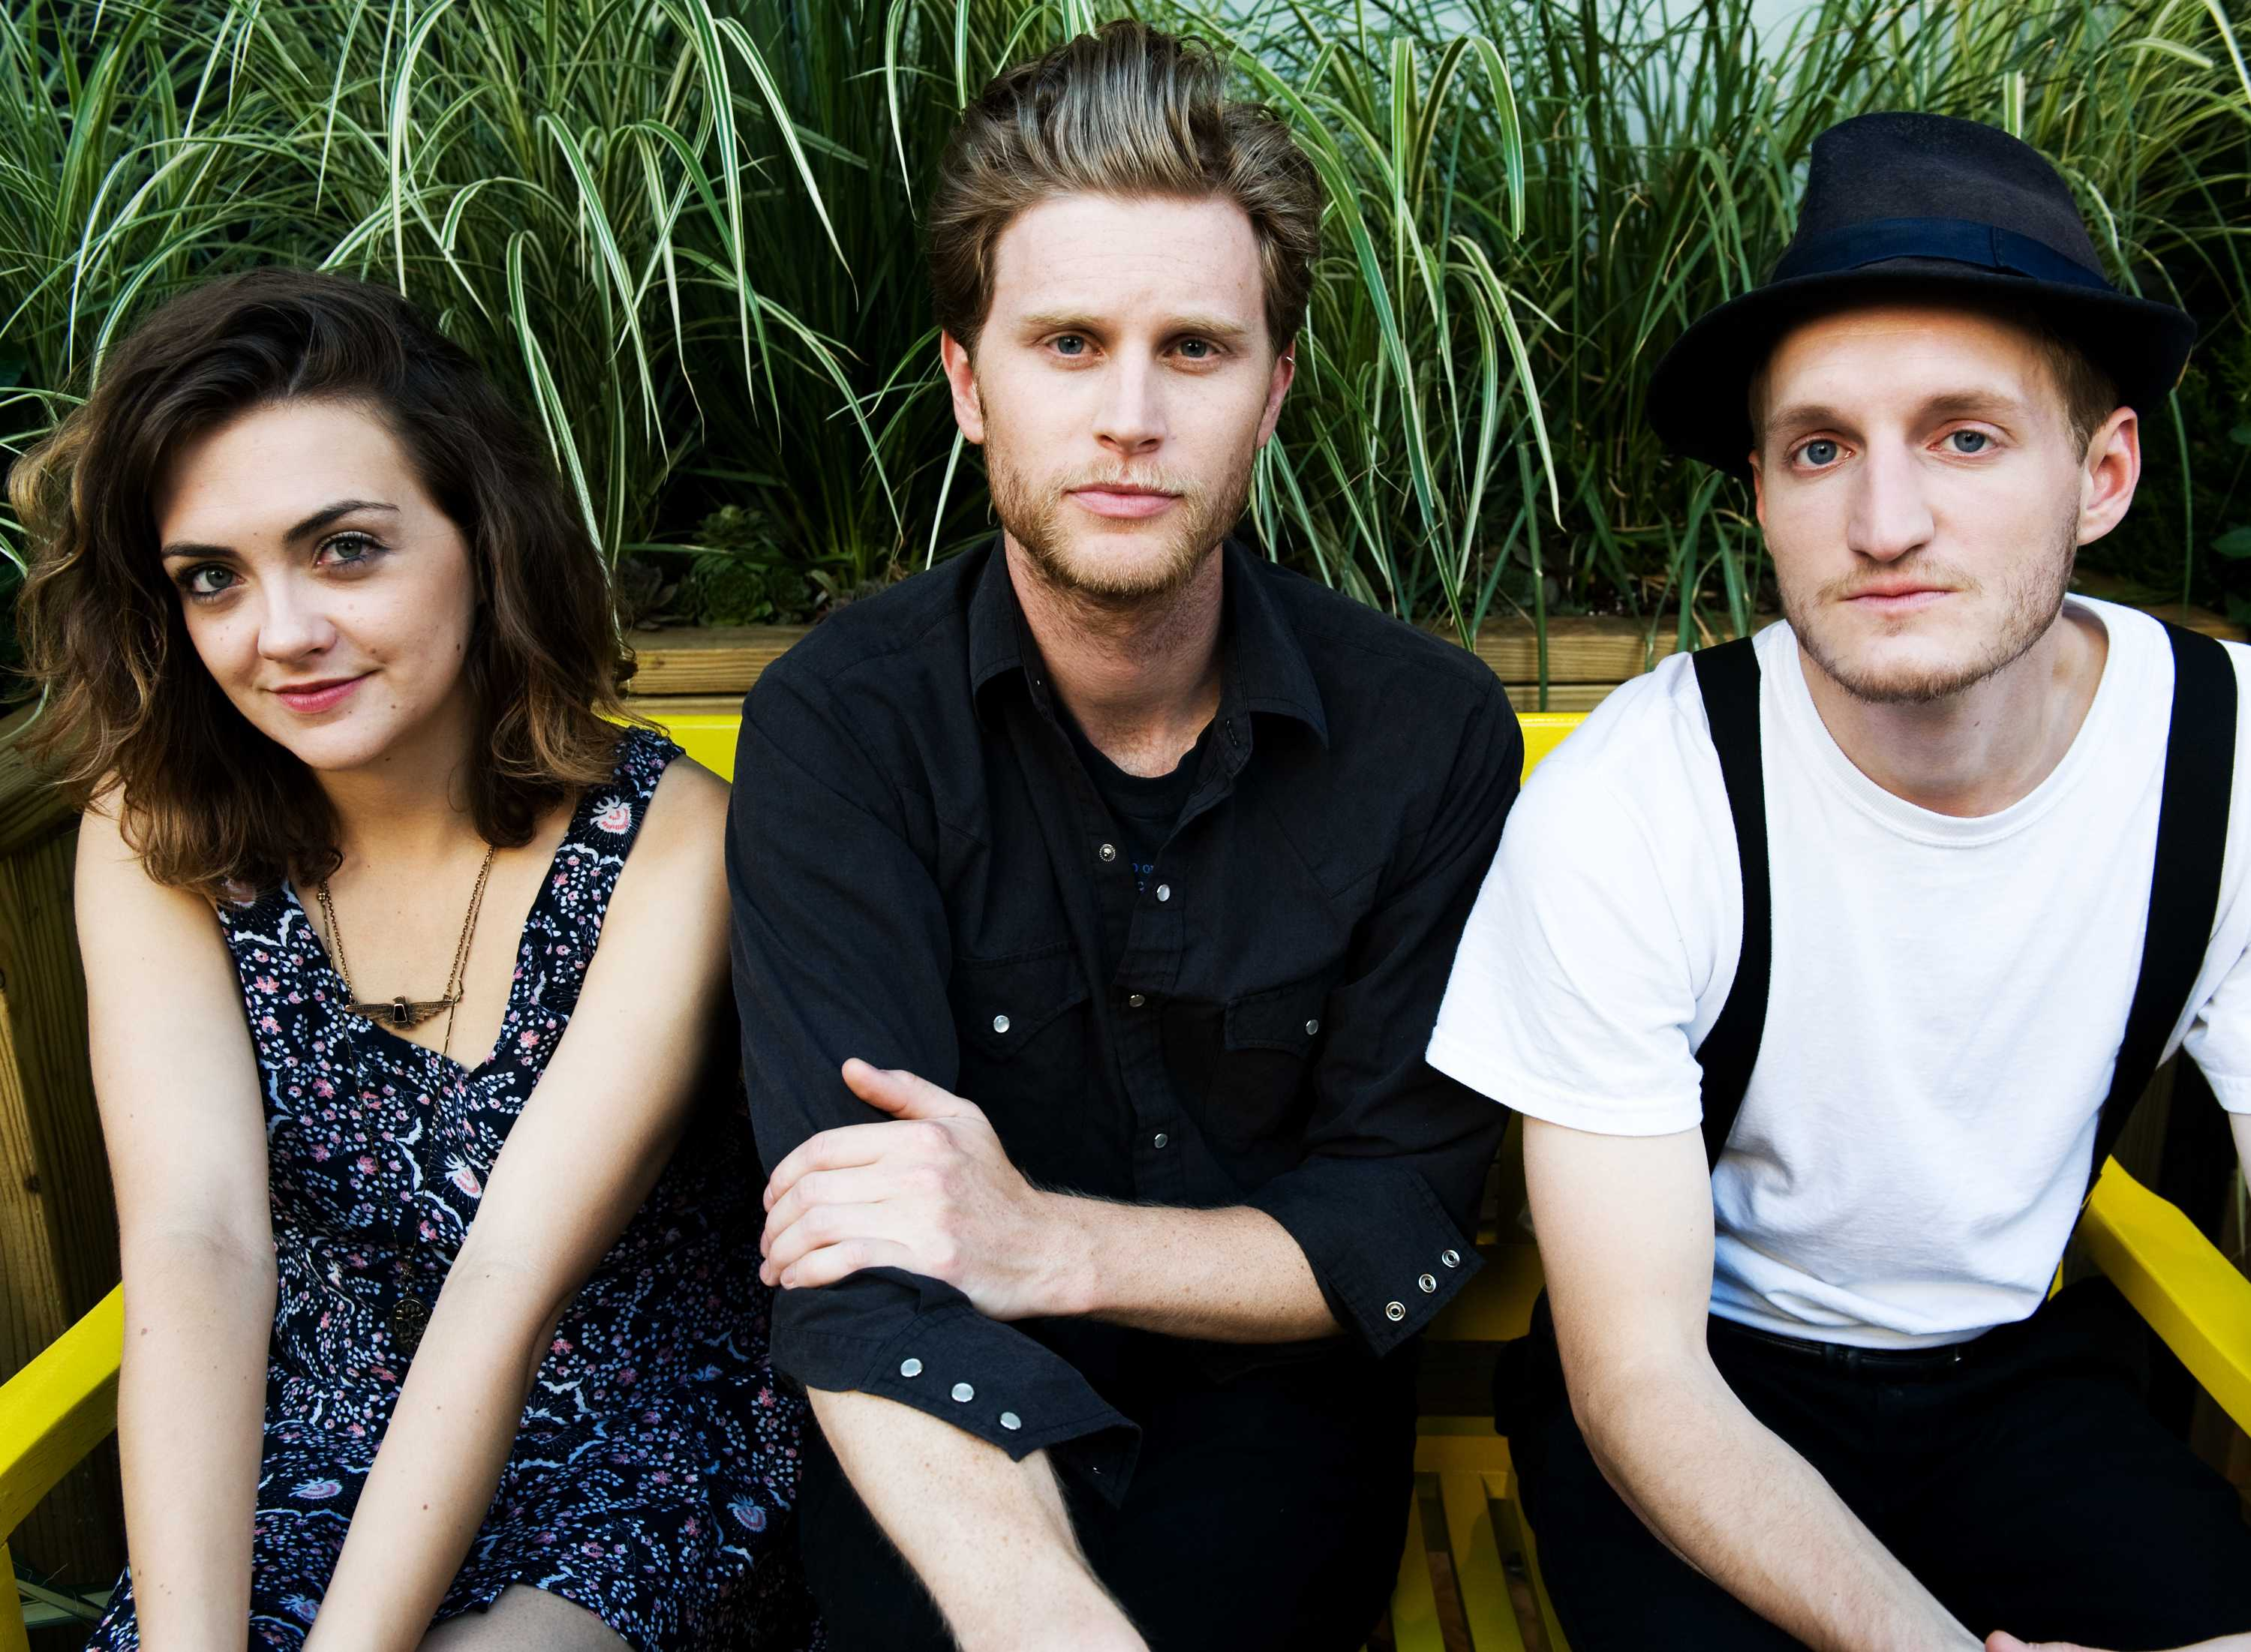 The Lumineers release sophomore album 'Cleopatra'